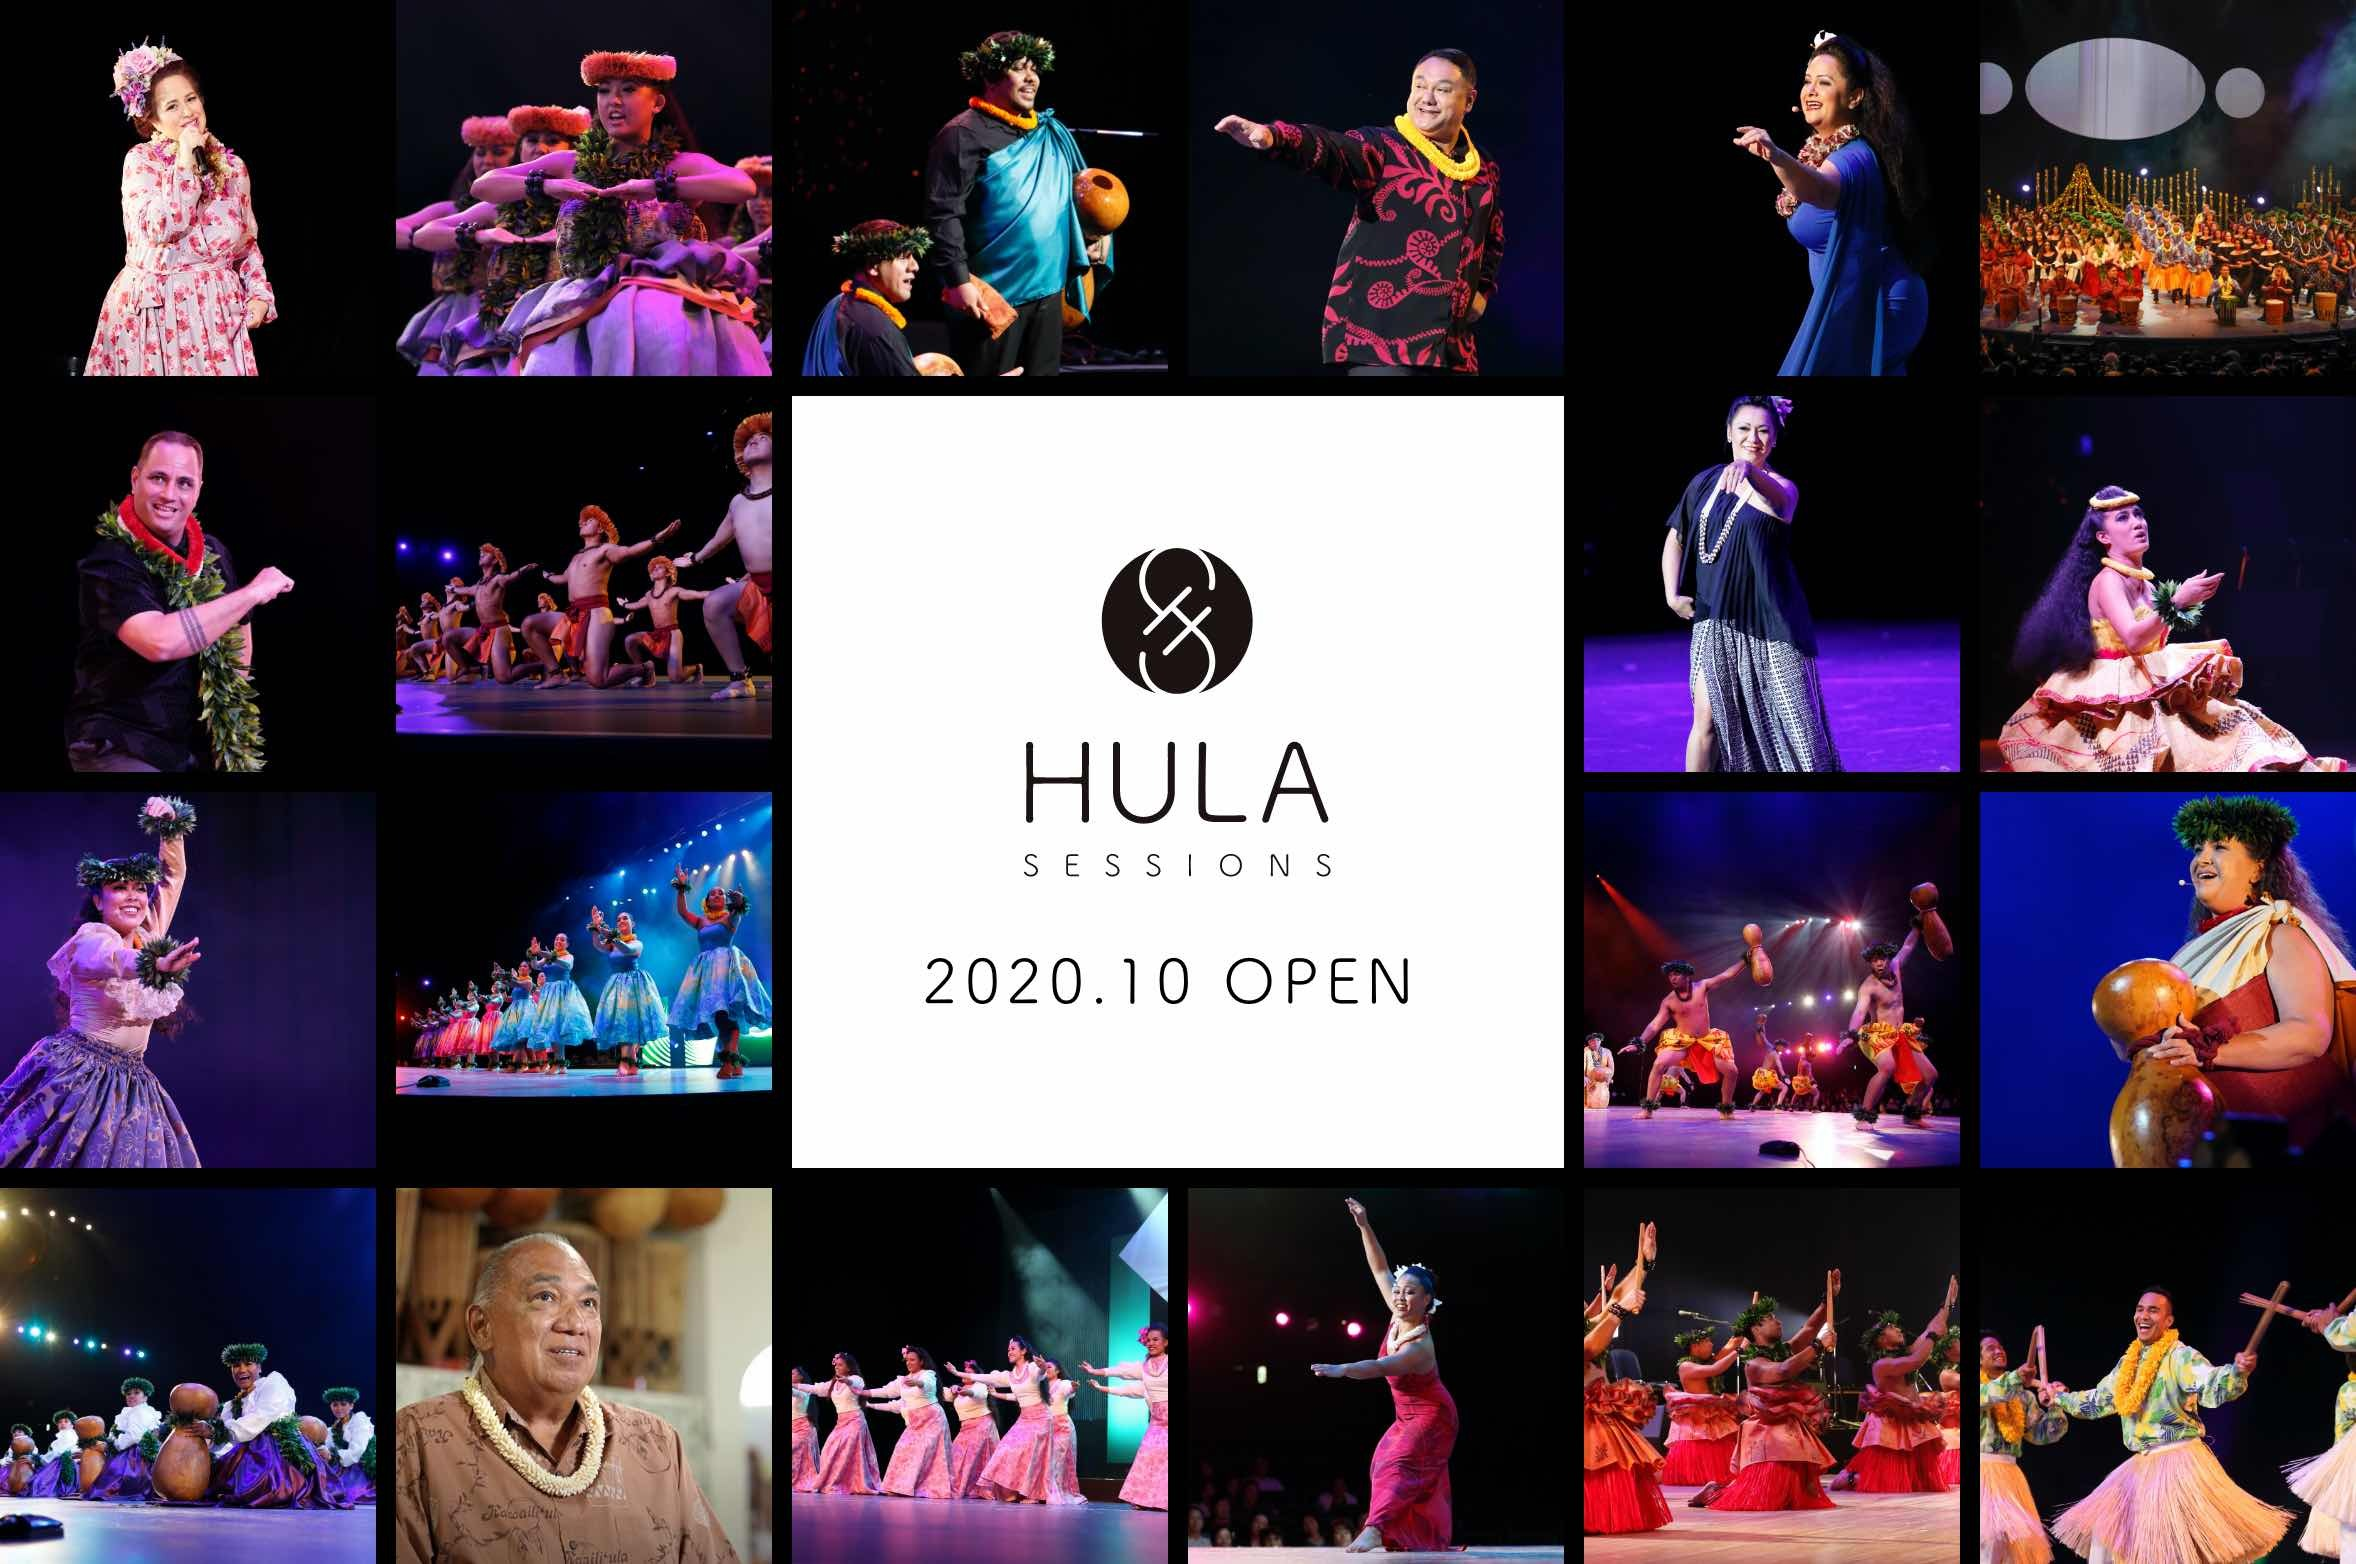 HULA SESSIONS 2020.10 OPEN